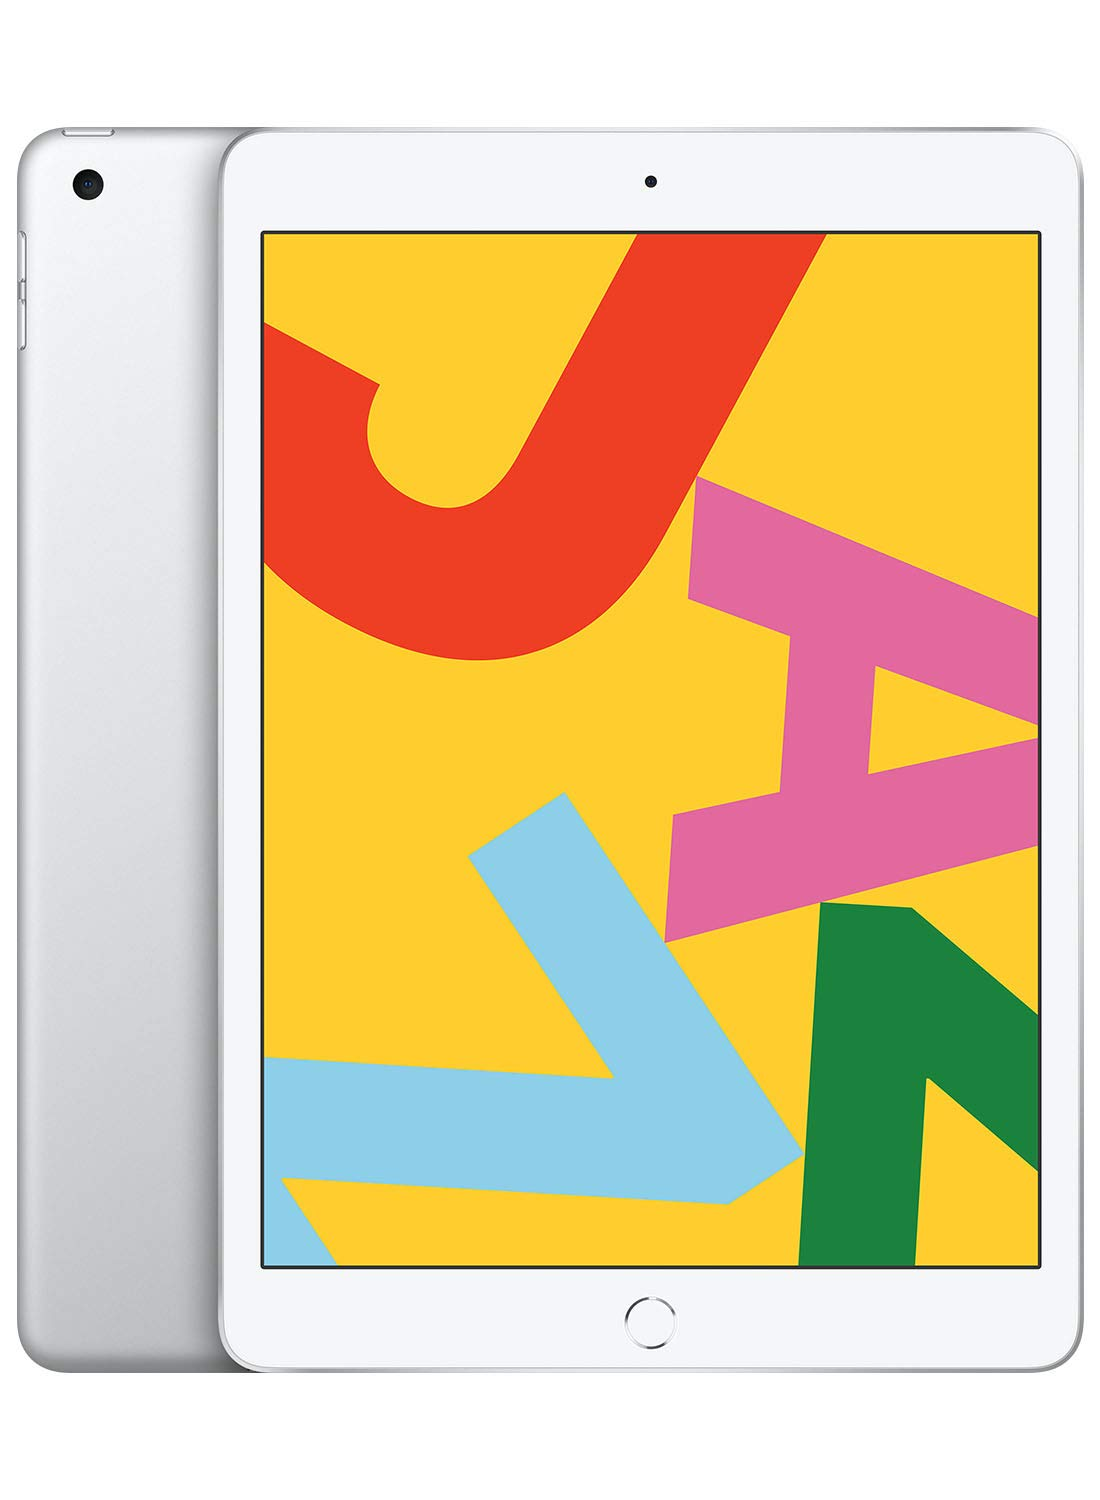 Apple iPad (10.2-inch, Wi-Fi, 32GB) - Silver (Latest Model)